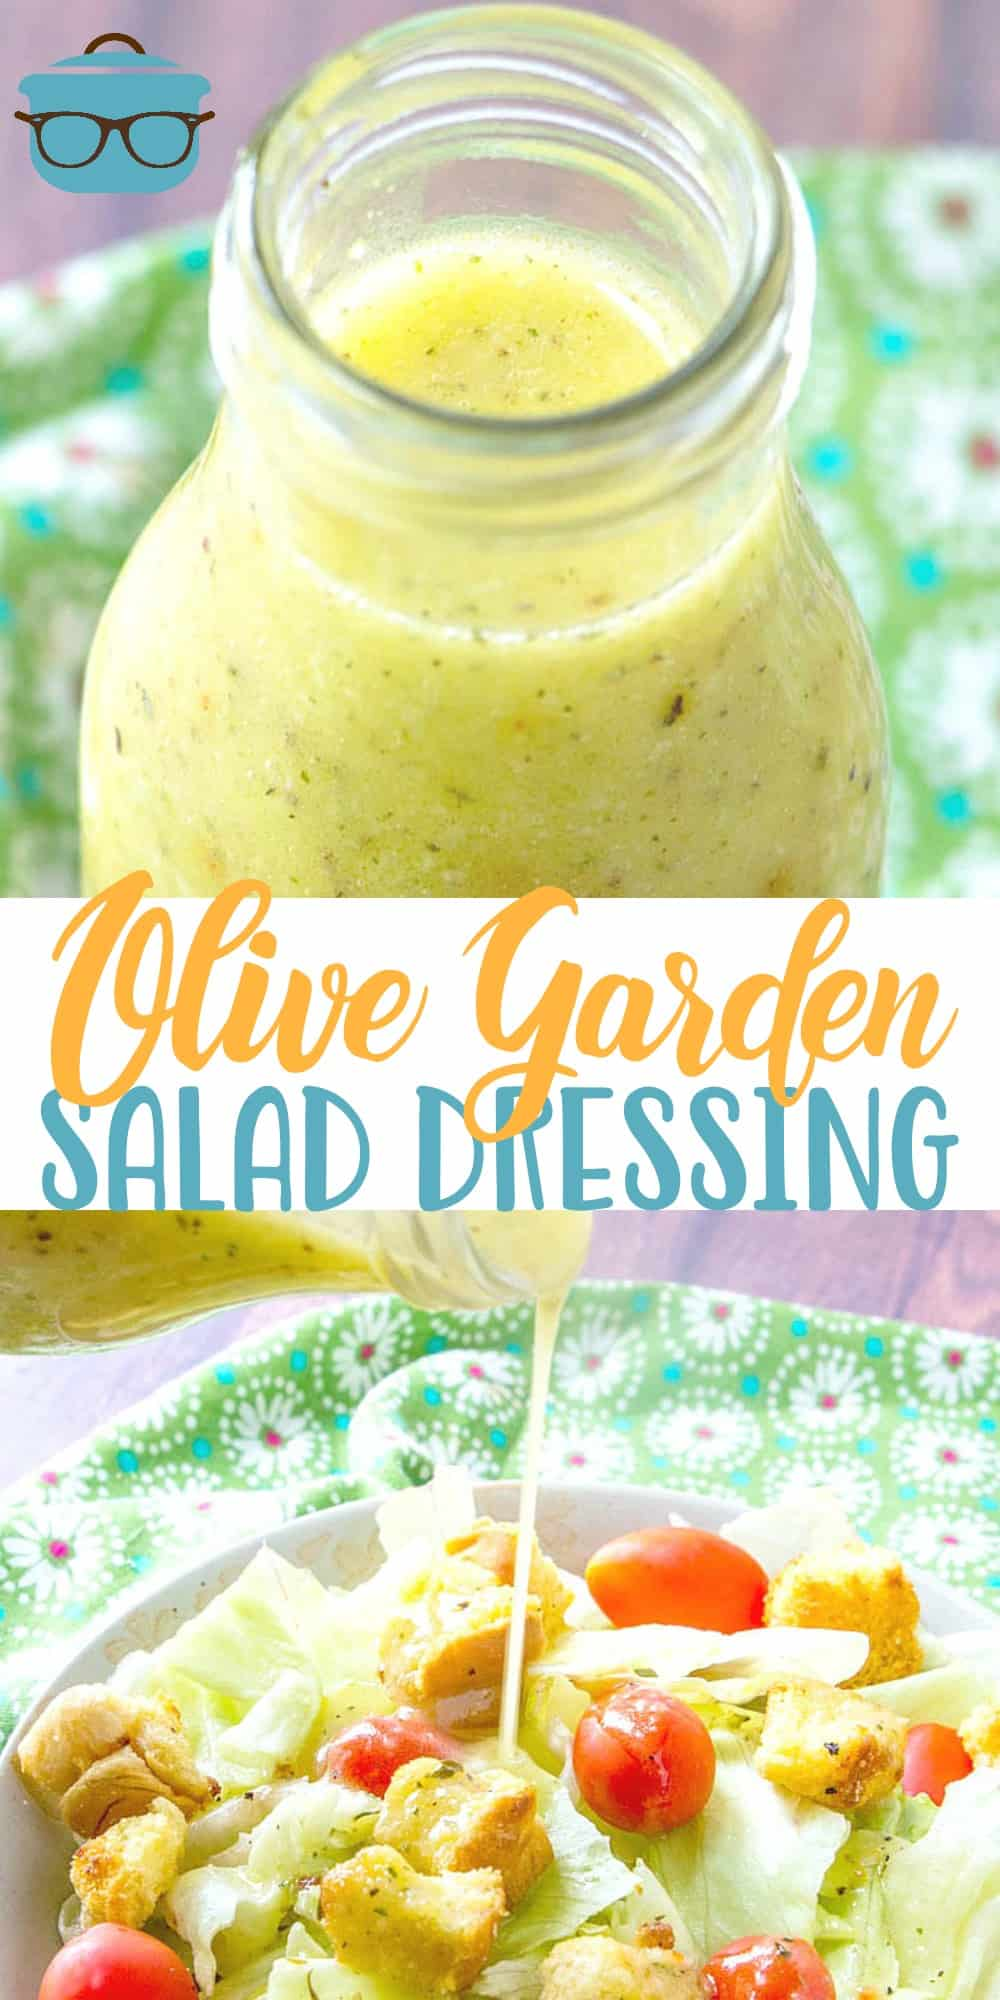 This homemade copycat Olive Garden Salad Dressing tastes even better than the original. It works great in pasta salads and as a marinade too! #saladdressing #olivegarden